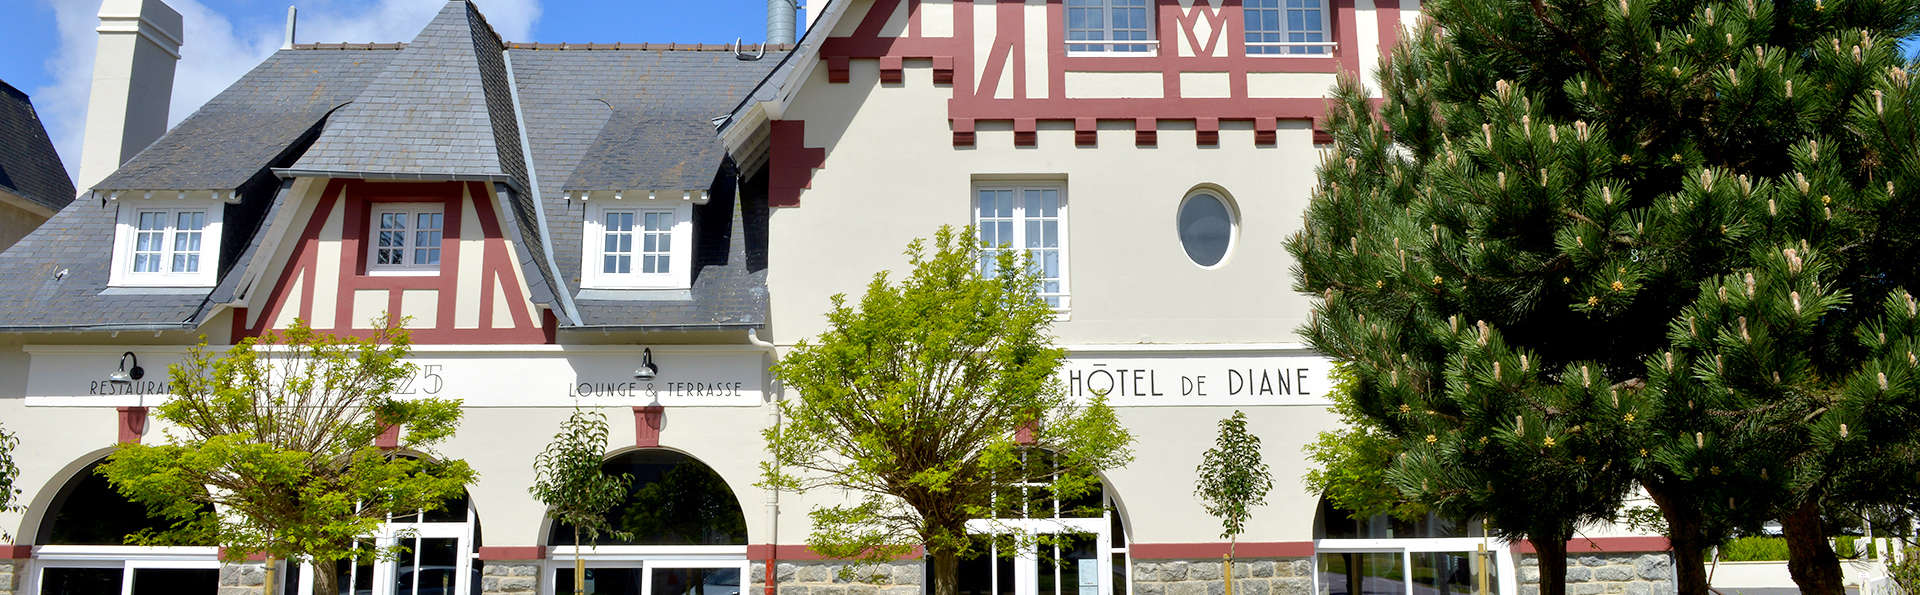 Hôtel de Diane - EDIT_NEW_FRONT5.jpg